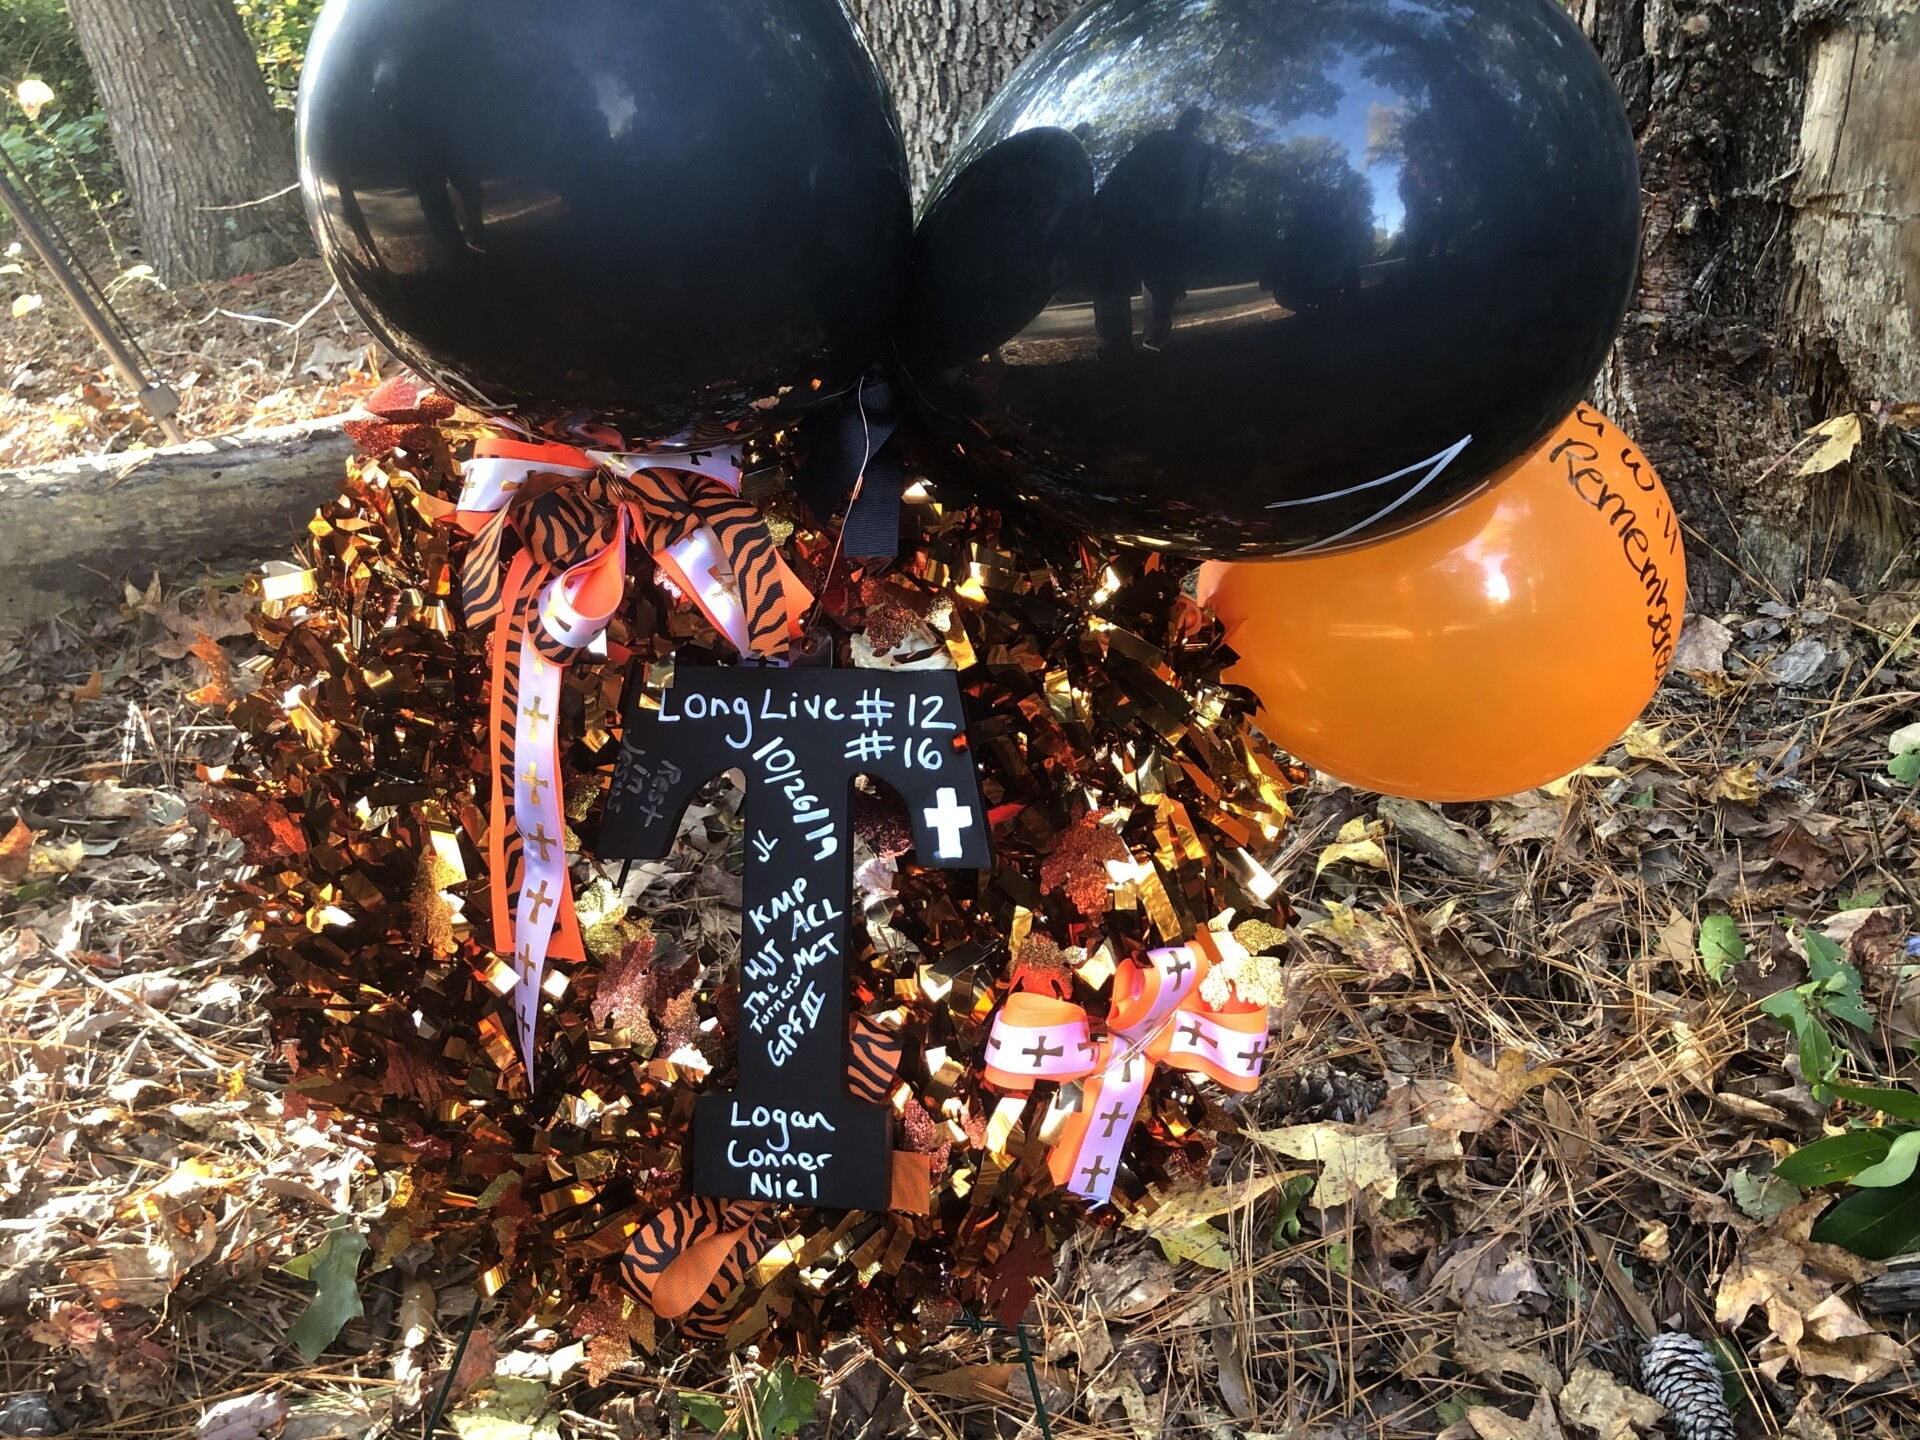 Photos: Community mourns after 3 teenagers killed in York Countycrash